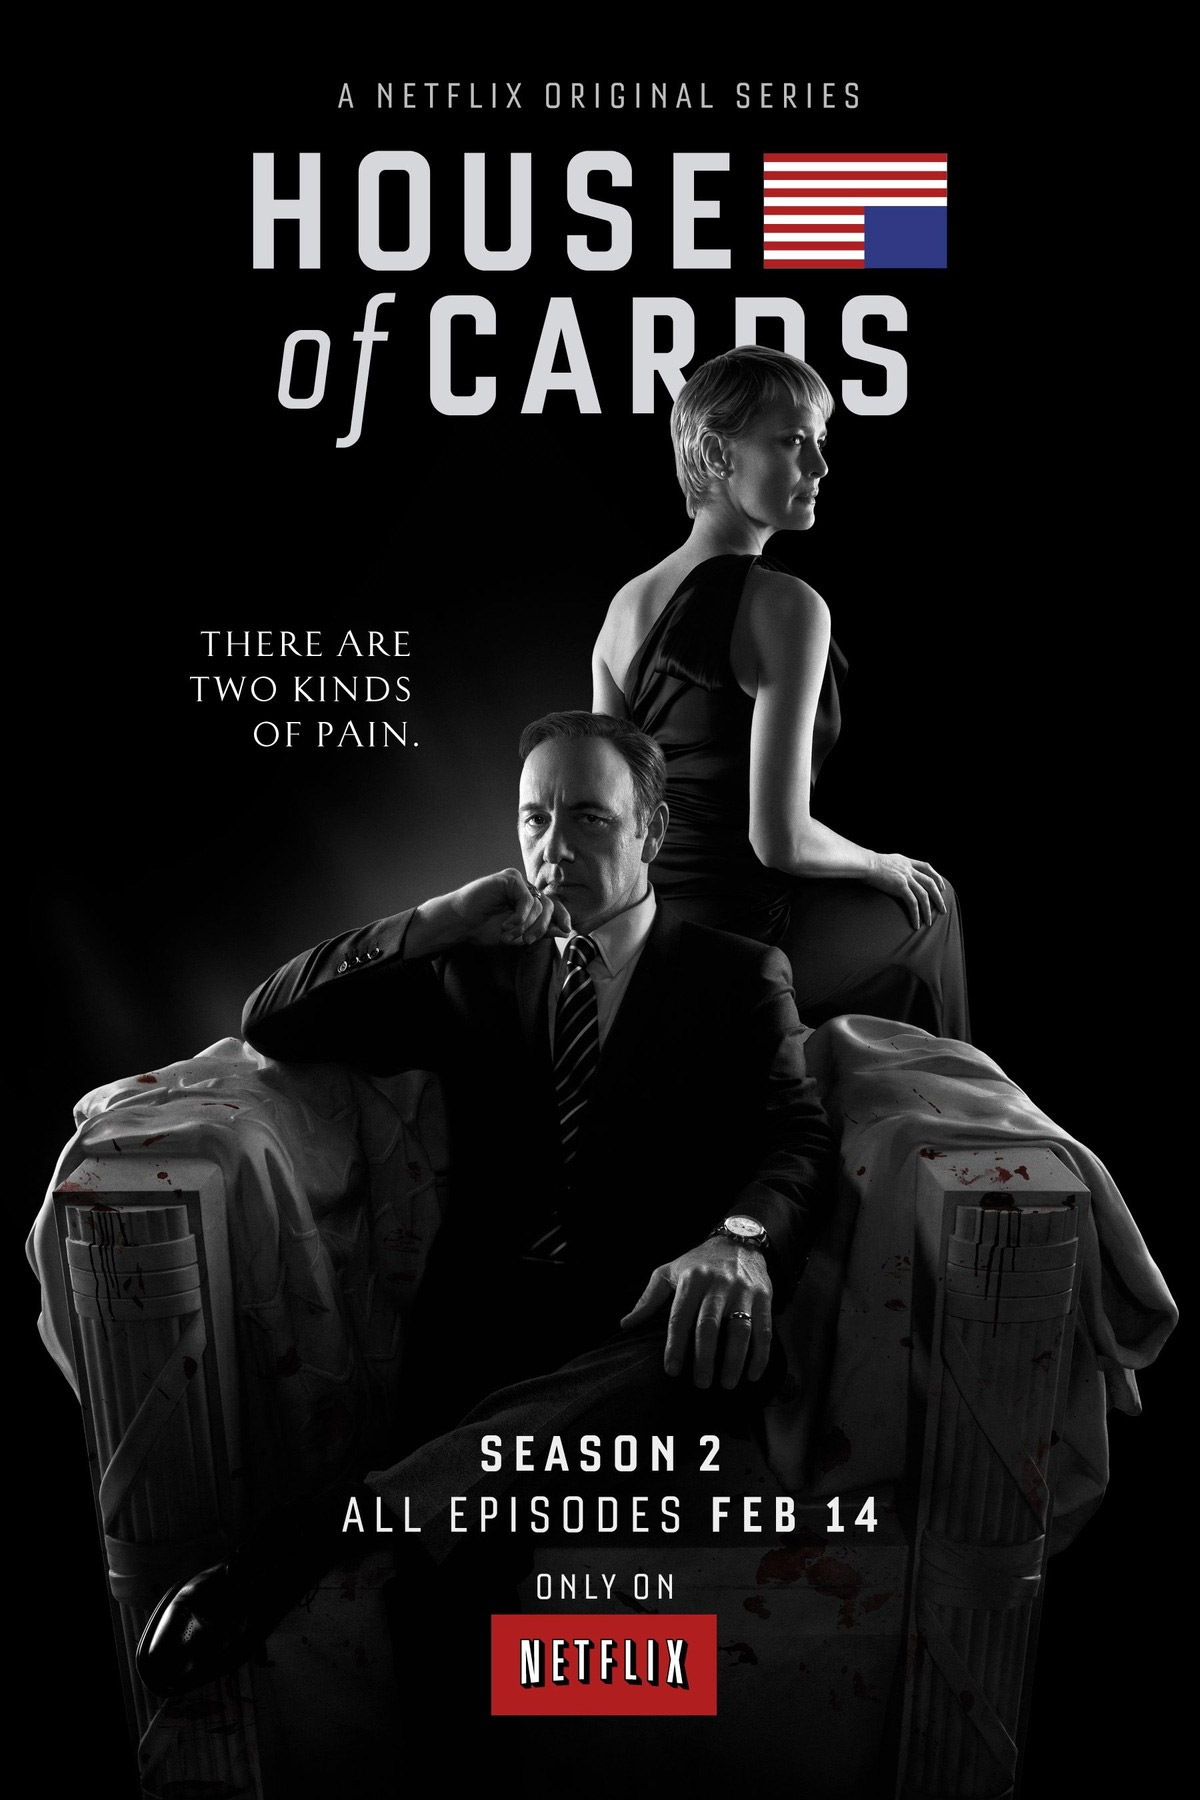 Netflix season 2 house of cards